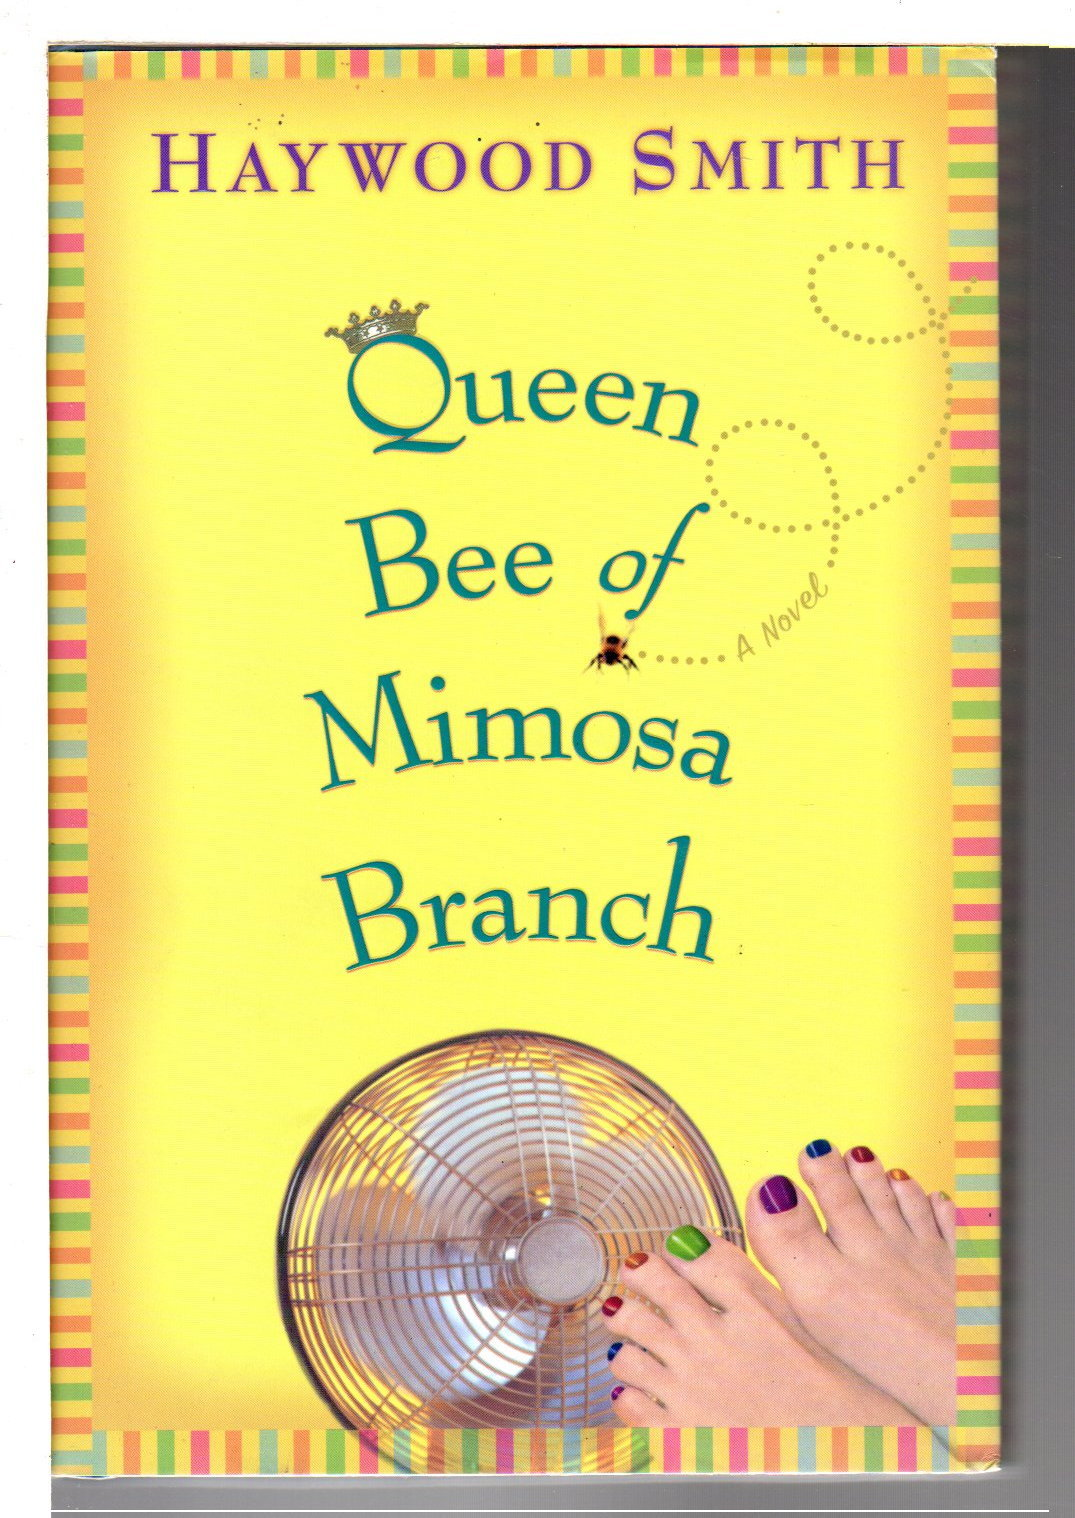 SMITH, HAYWOOD. - QUEEN BEE OF MIMOSA BRANCH.